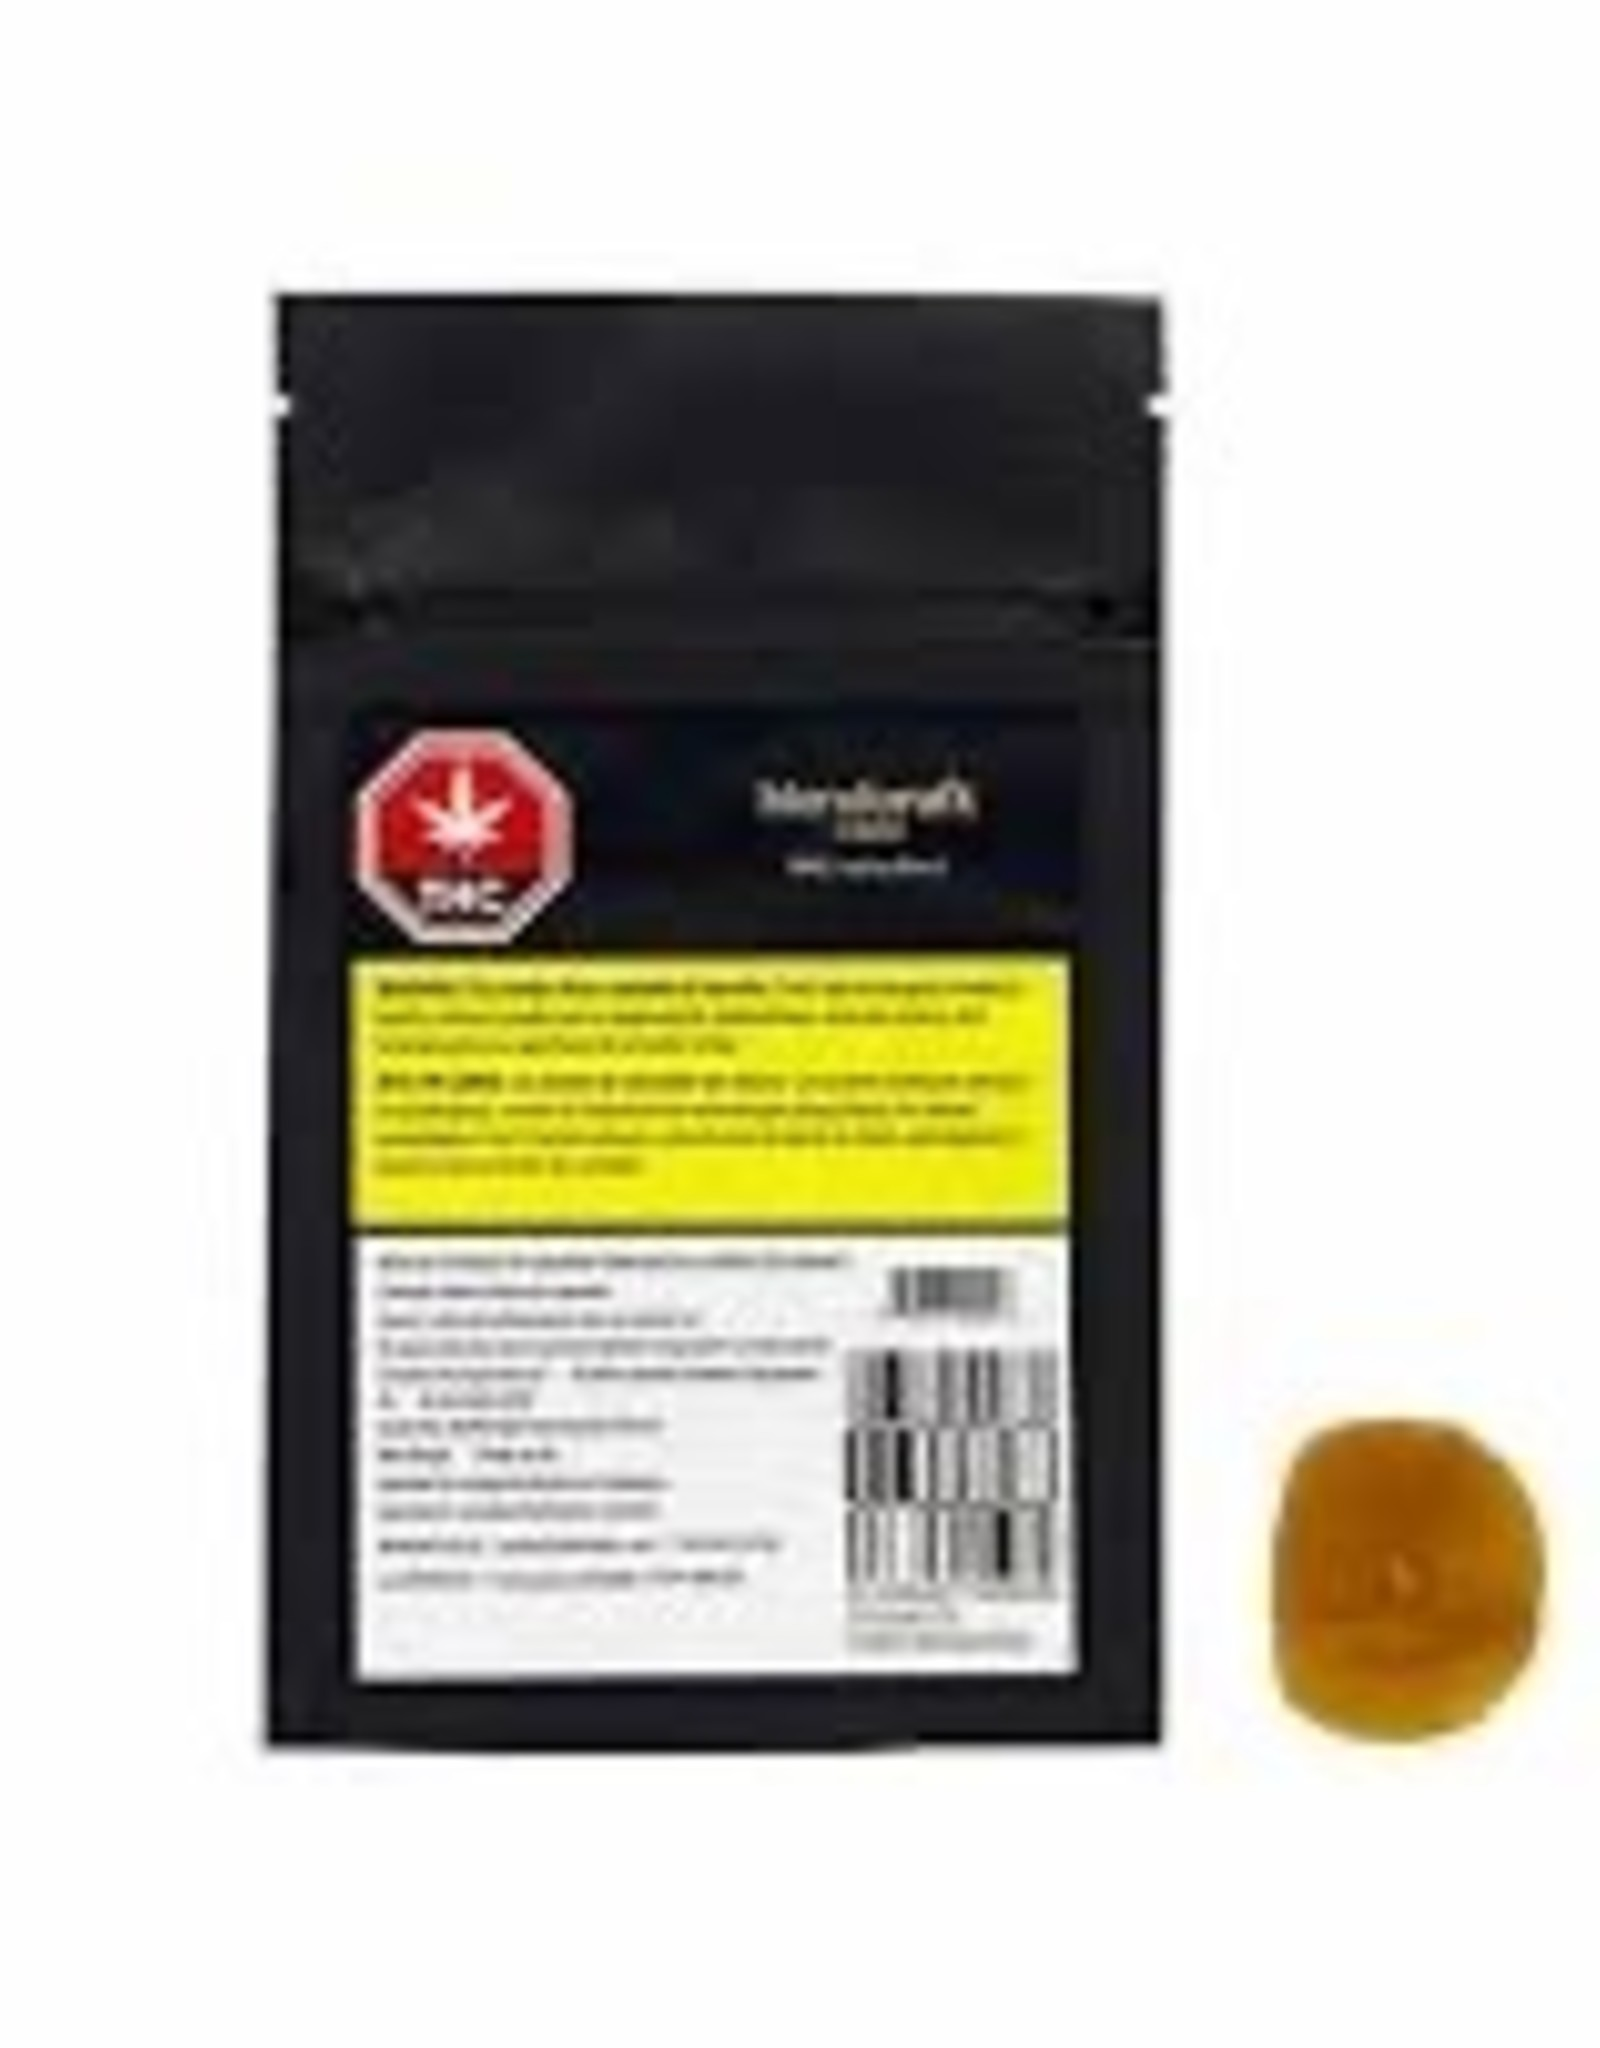 Qwest Reserve Qwest - Blendcraft Wax - 1G